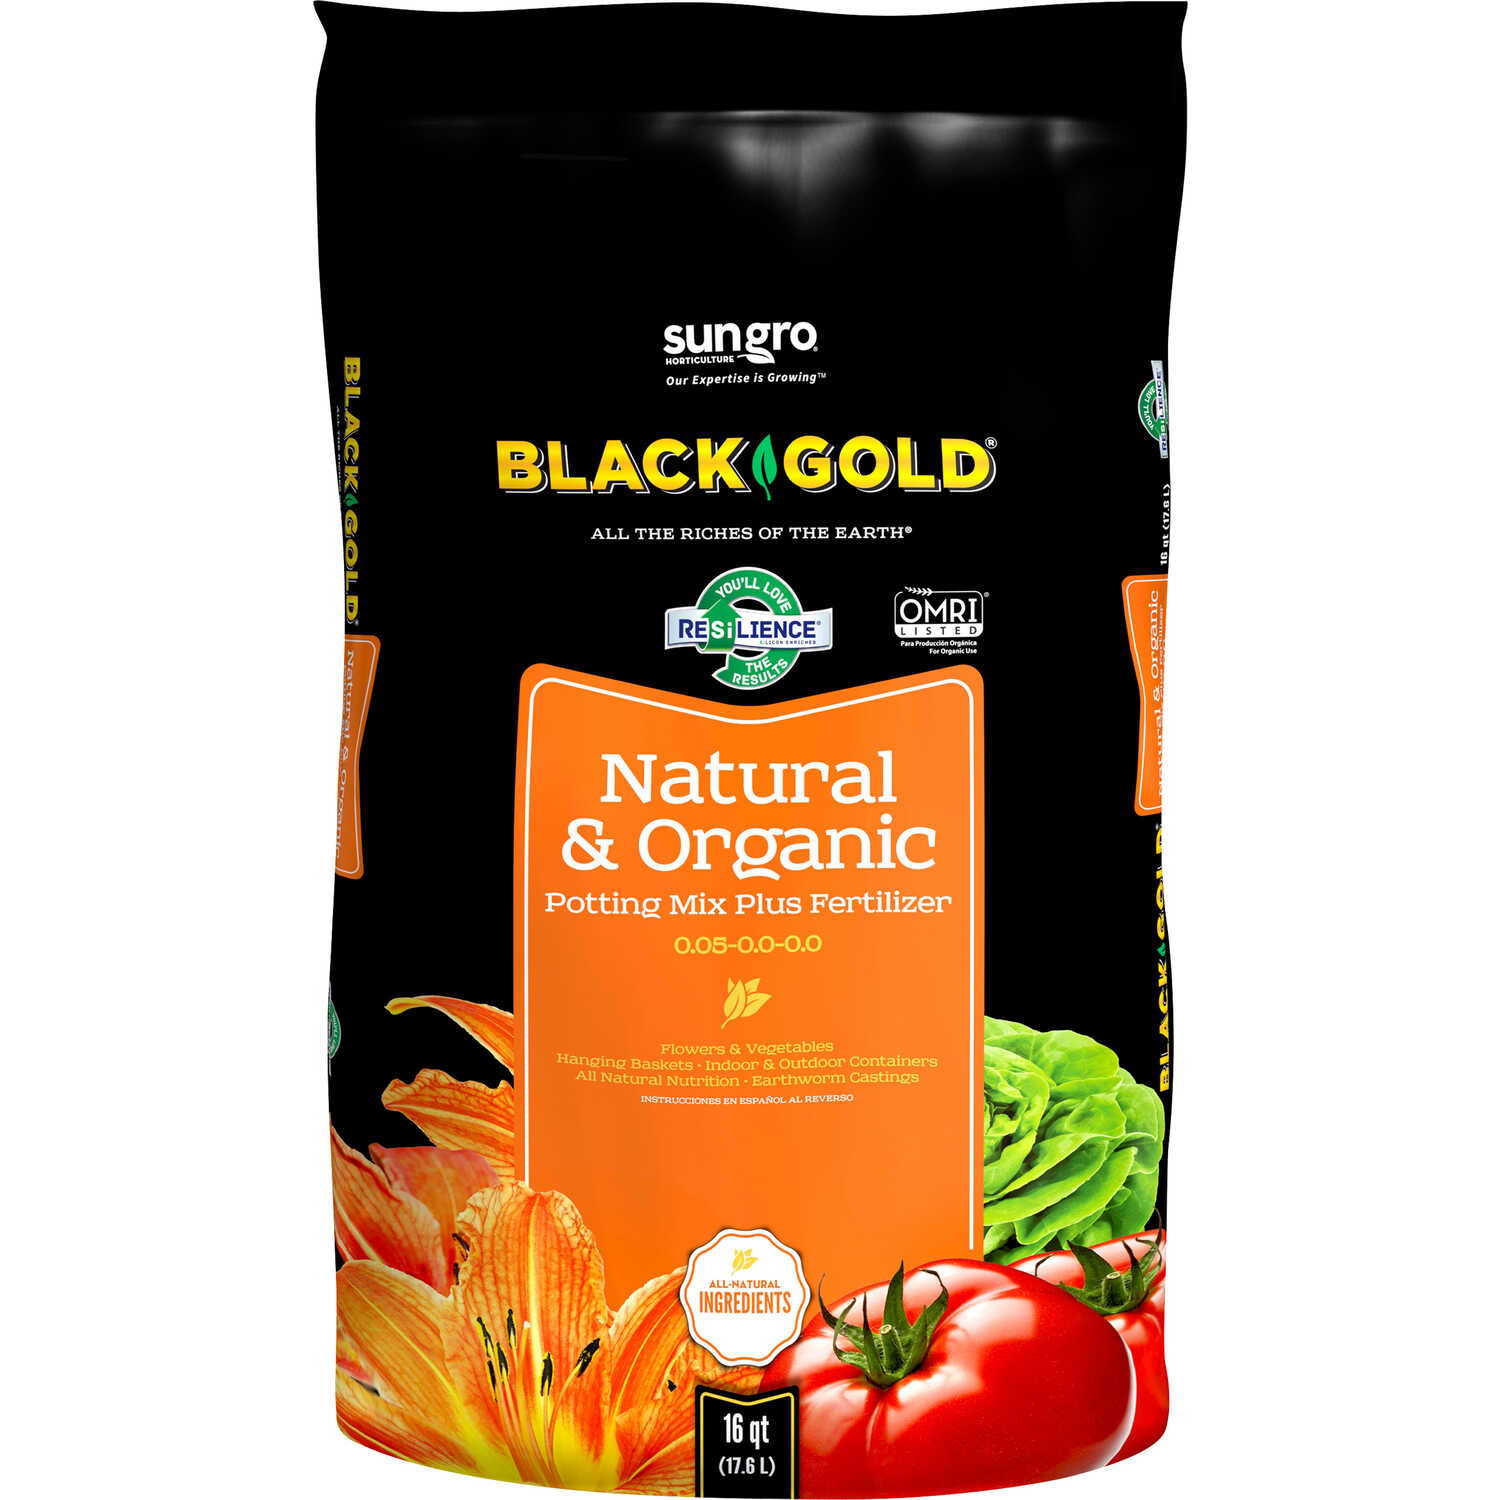 Black Gold Natural Organic Potting Soil Ace Hardware Home Gt Appliances Rv Appliance Circuit Boards